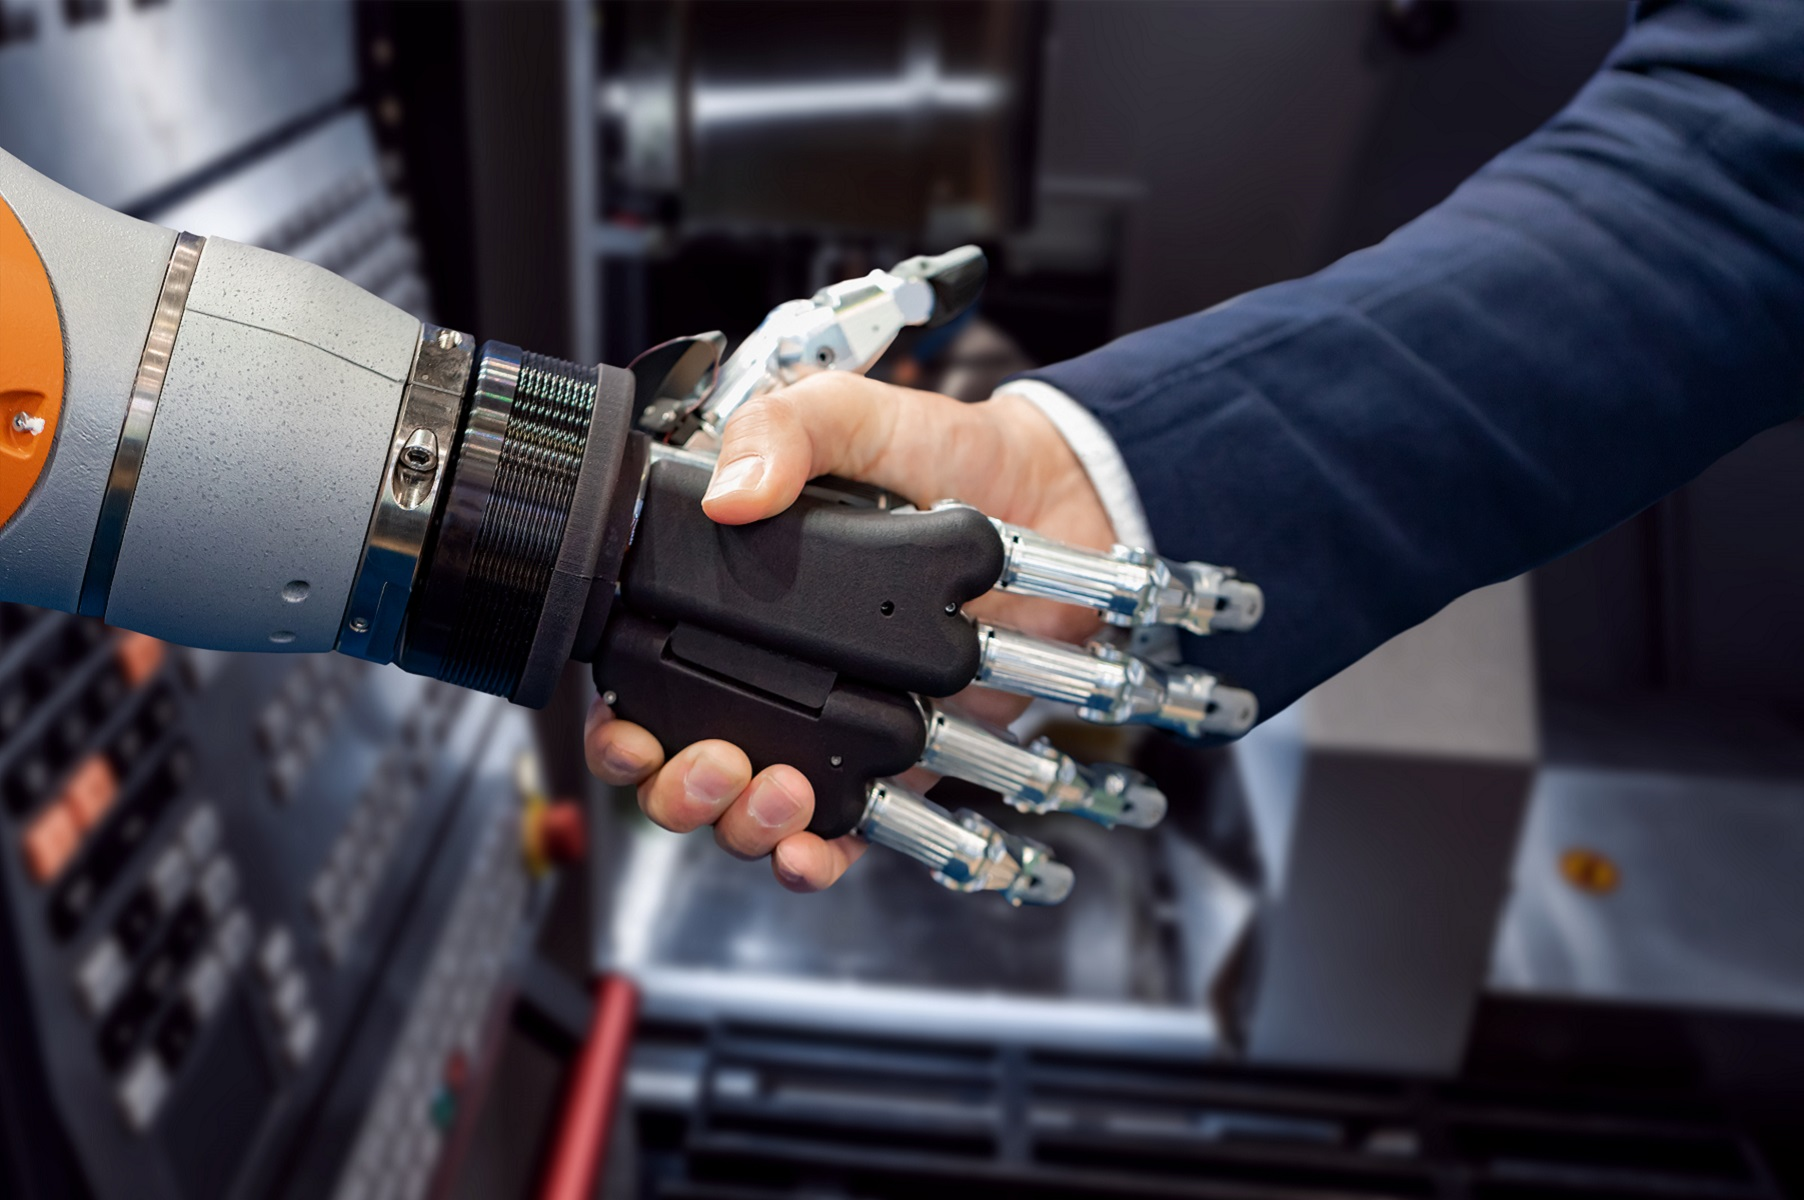 hand-of-a-businessman-shaking-hands-with-an-android-robot-automation